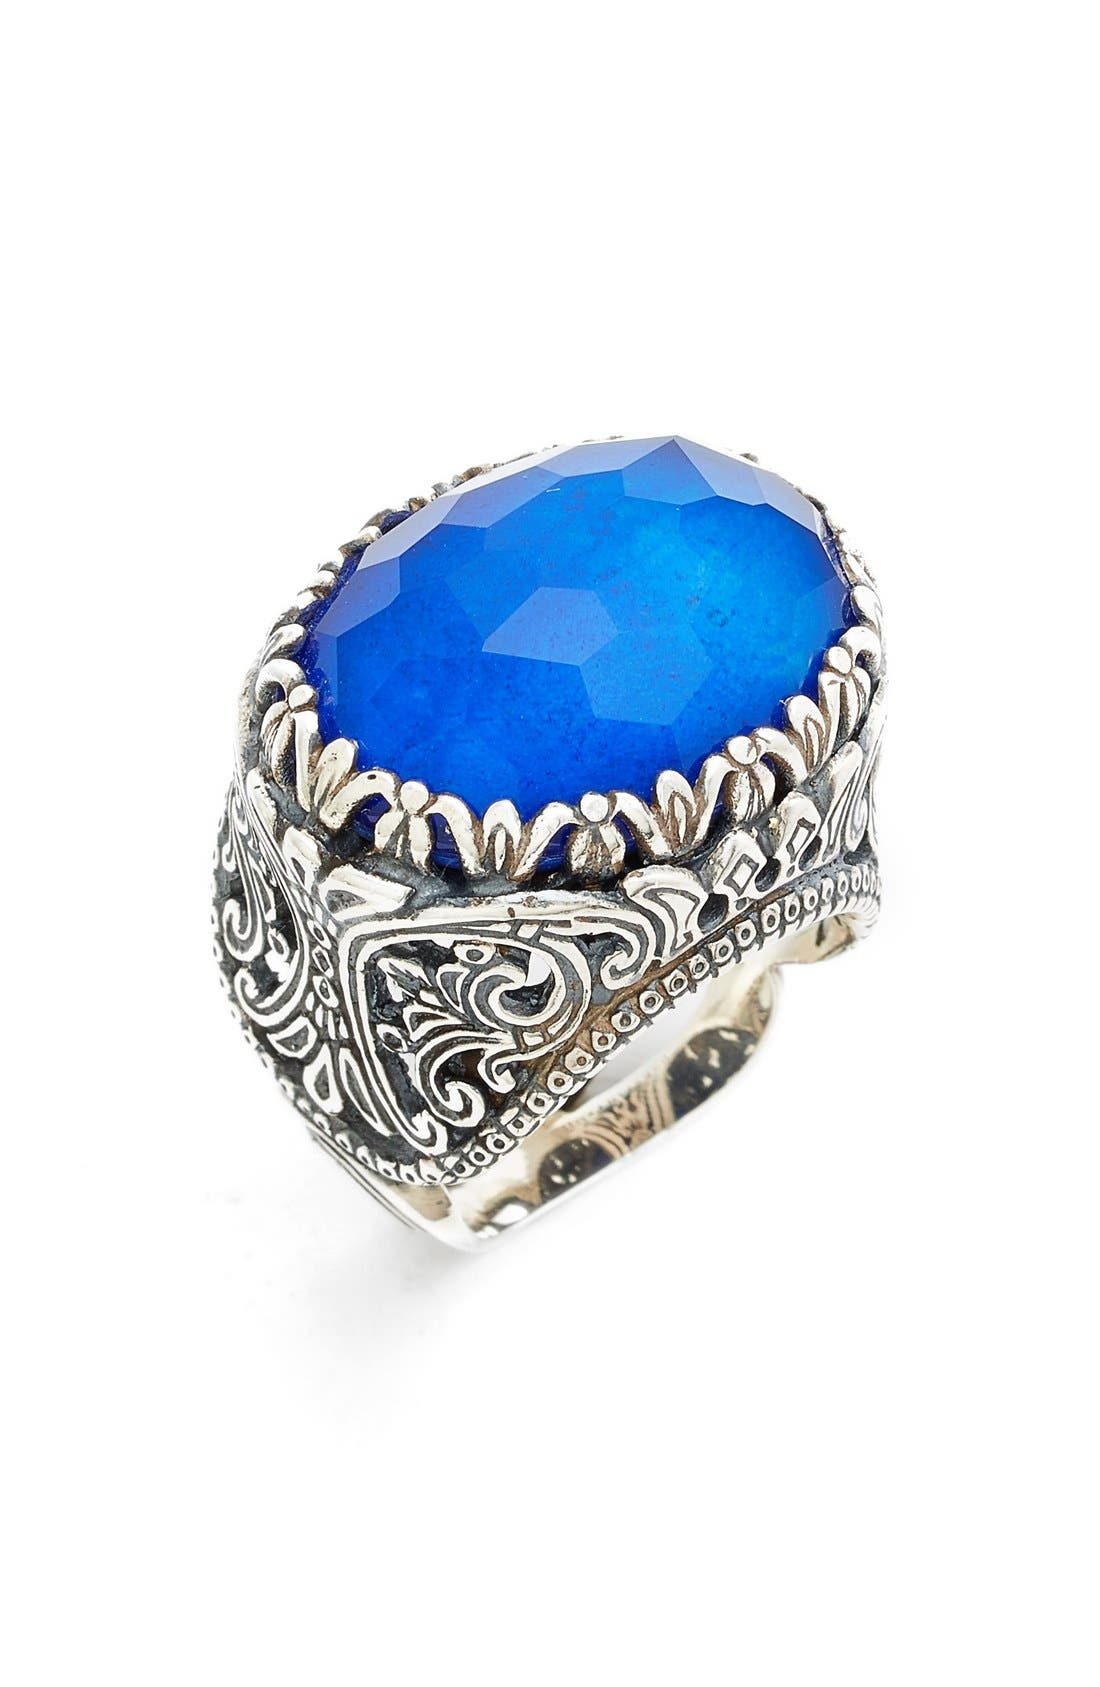 Andromeda Lapis Lazuli Ring,                             Main thumbnail 1, color,                             Sterling Silver